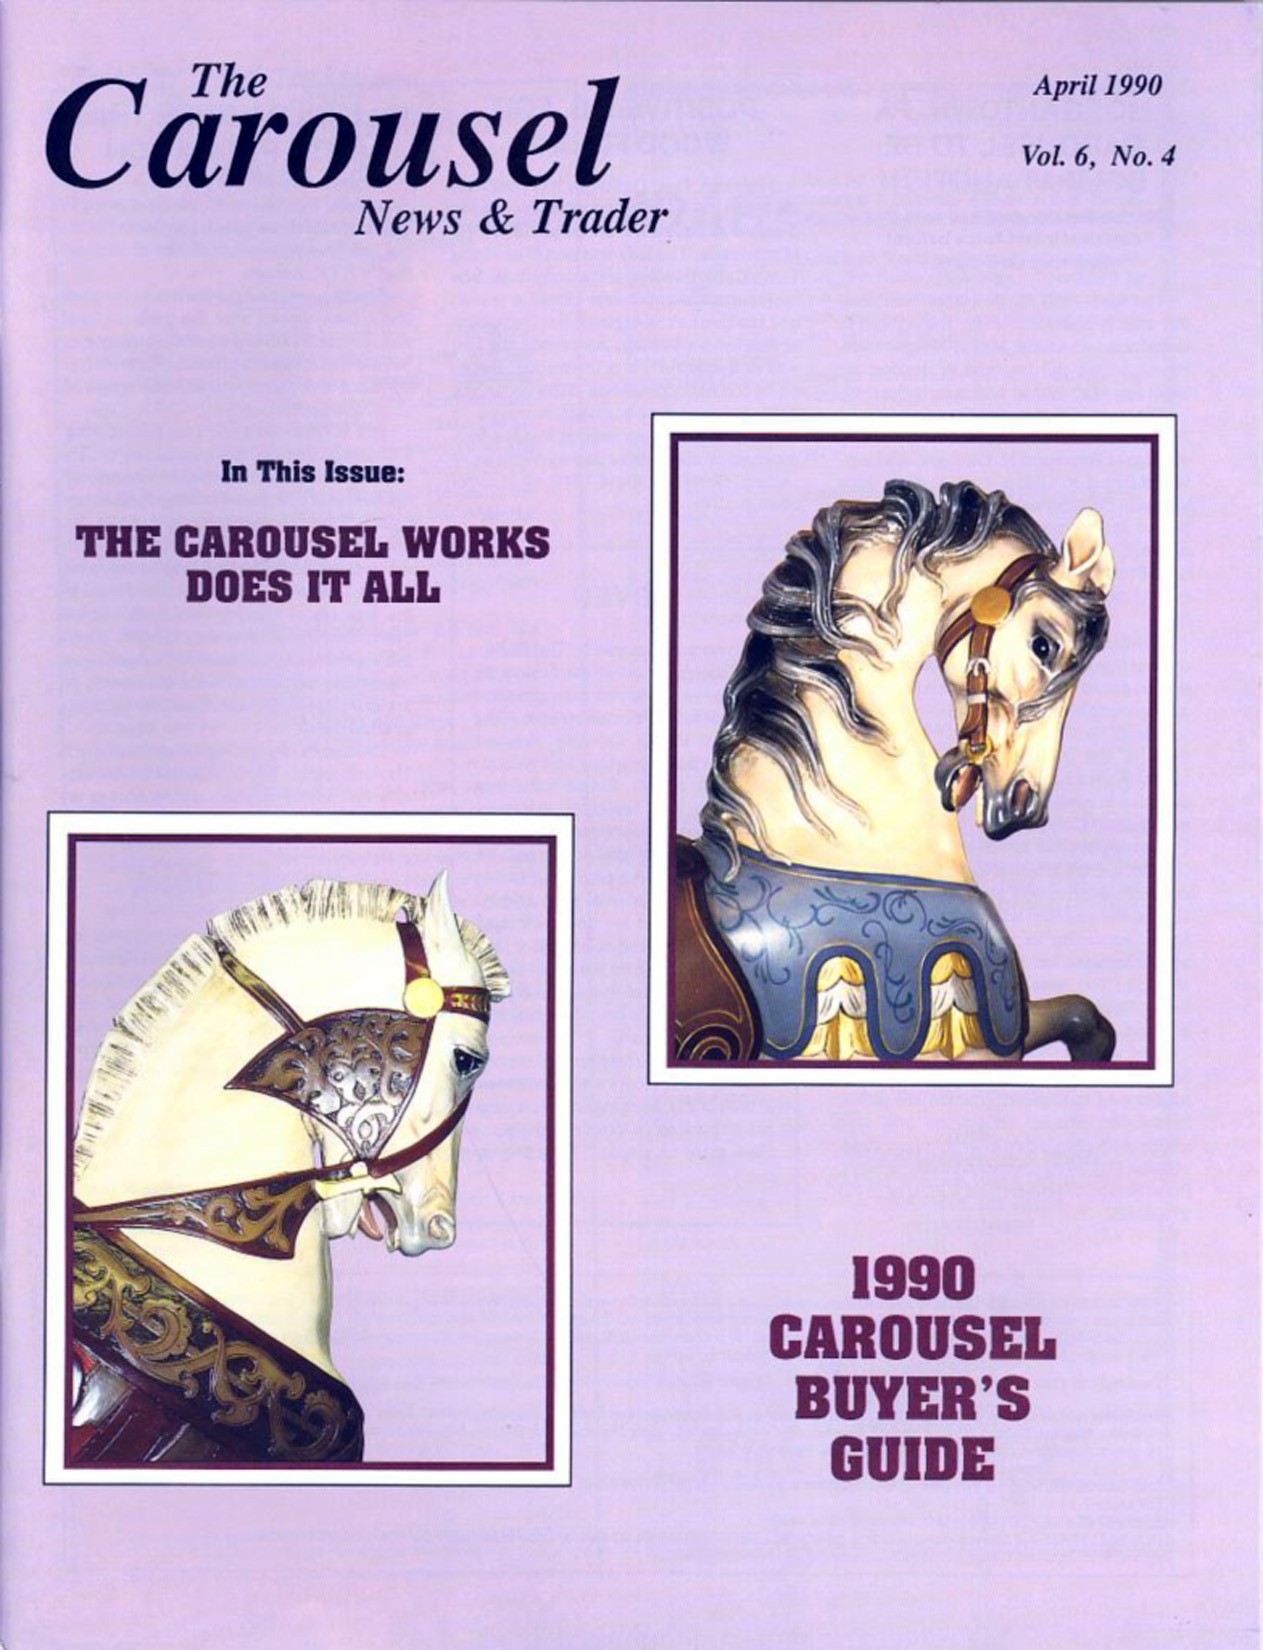 Carousel-News_04_1990-Looff-Muller-carousel-horse-restored